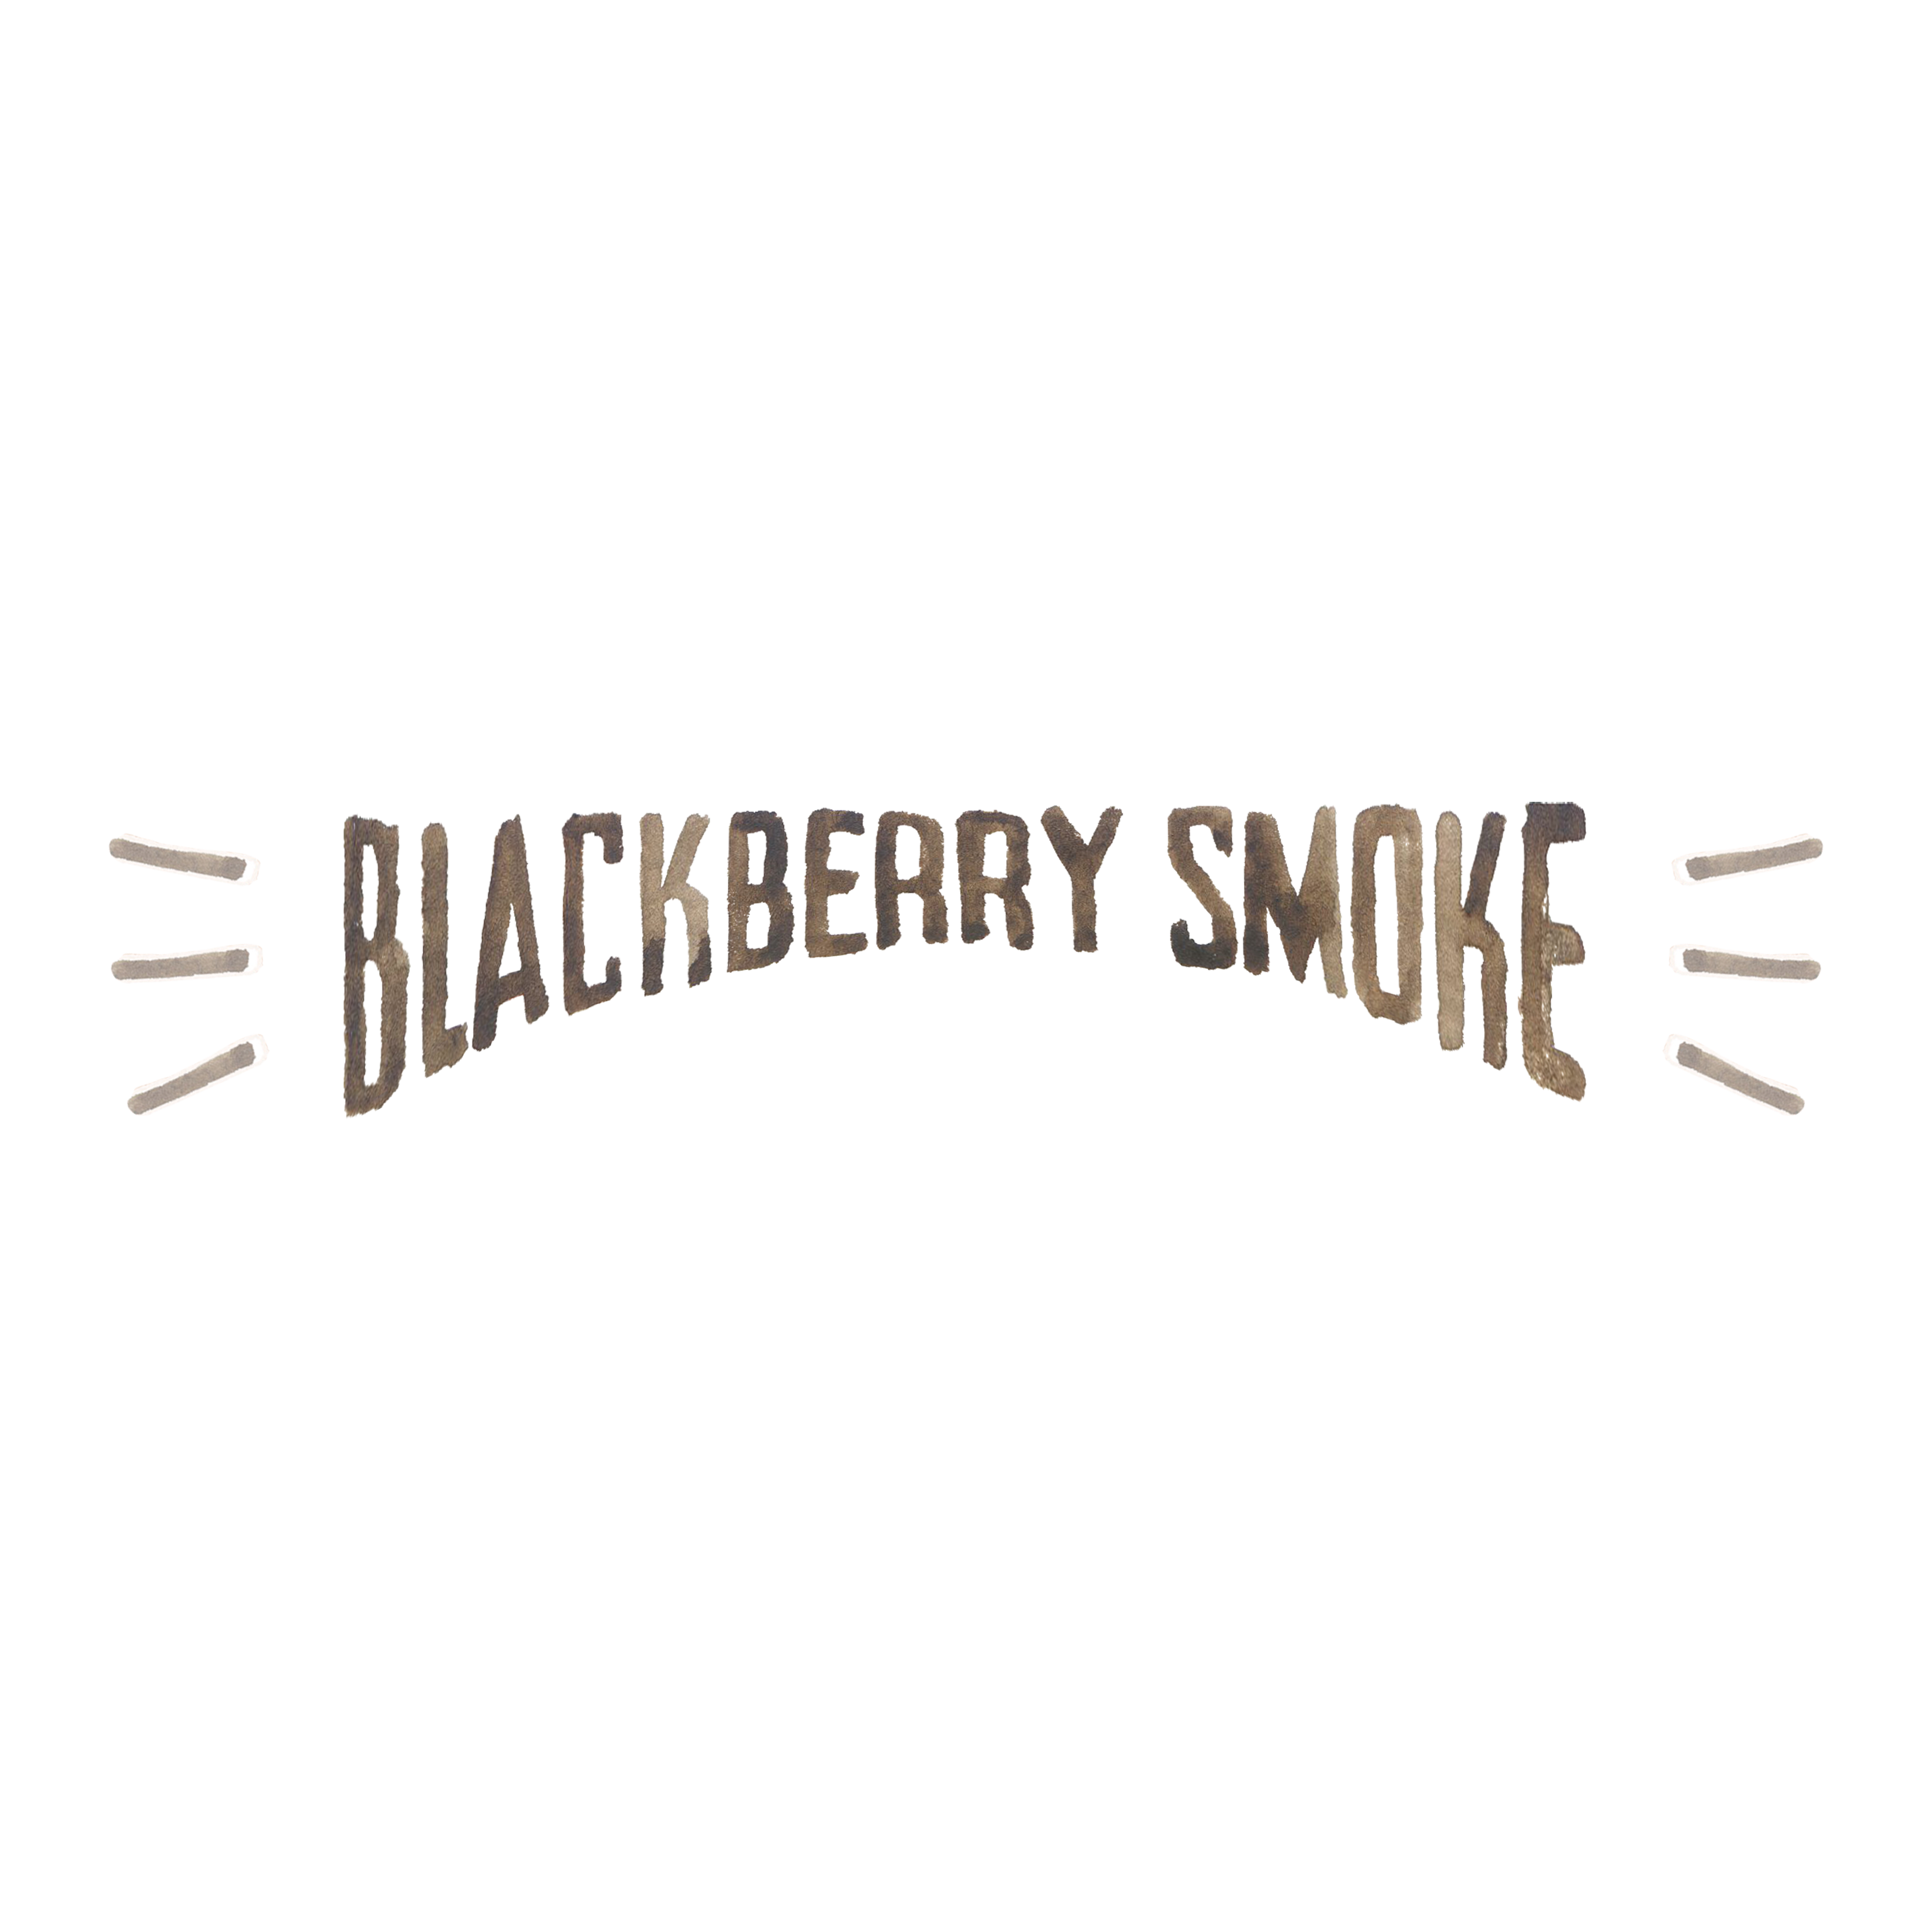 Blackberry smoke logo png. Collins center for